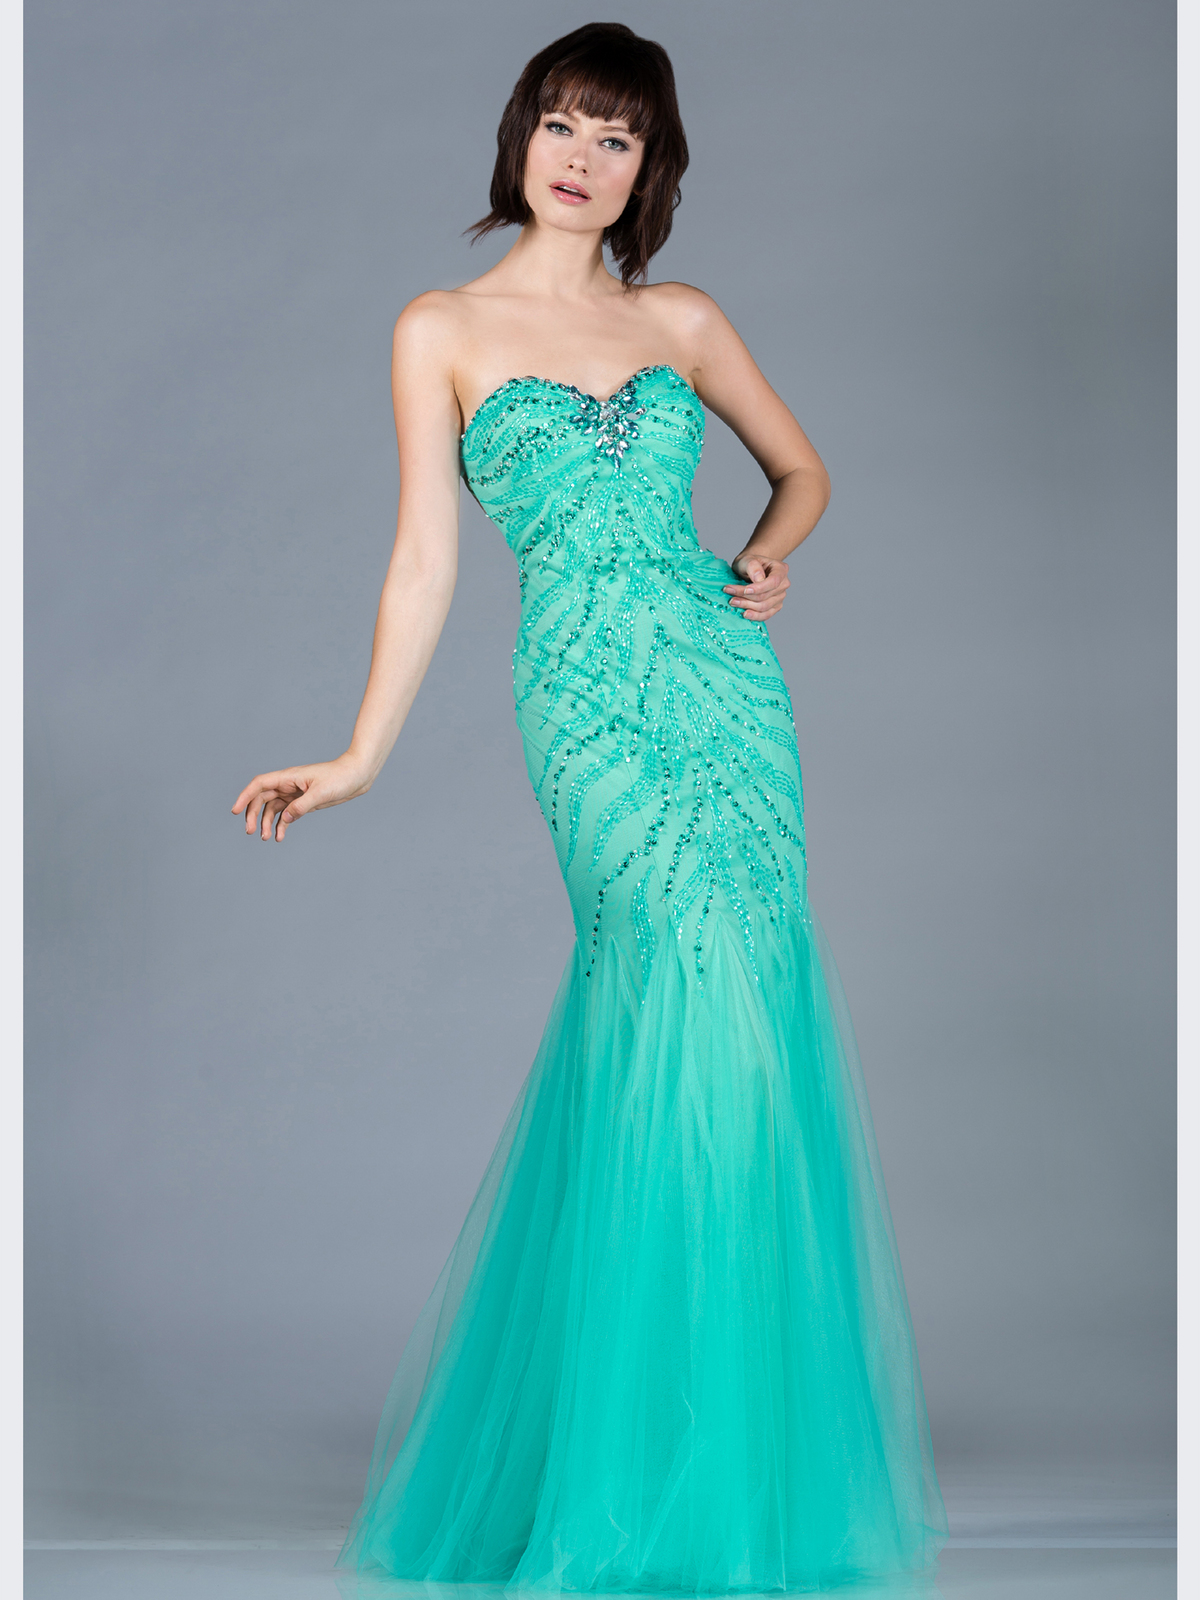 Mint Sequin and Bead Mermaid Prom Dress | Sung Boutique L.A.